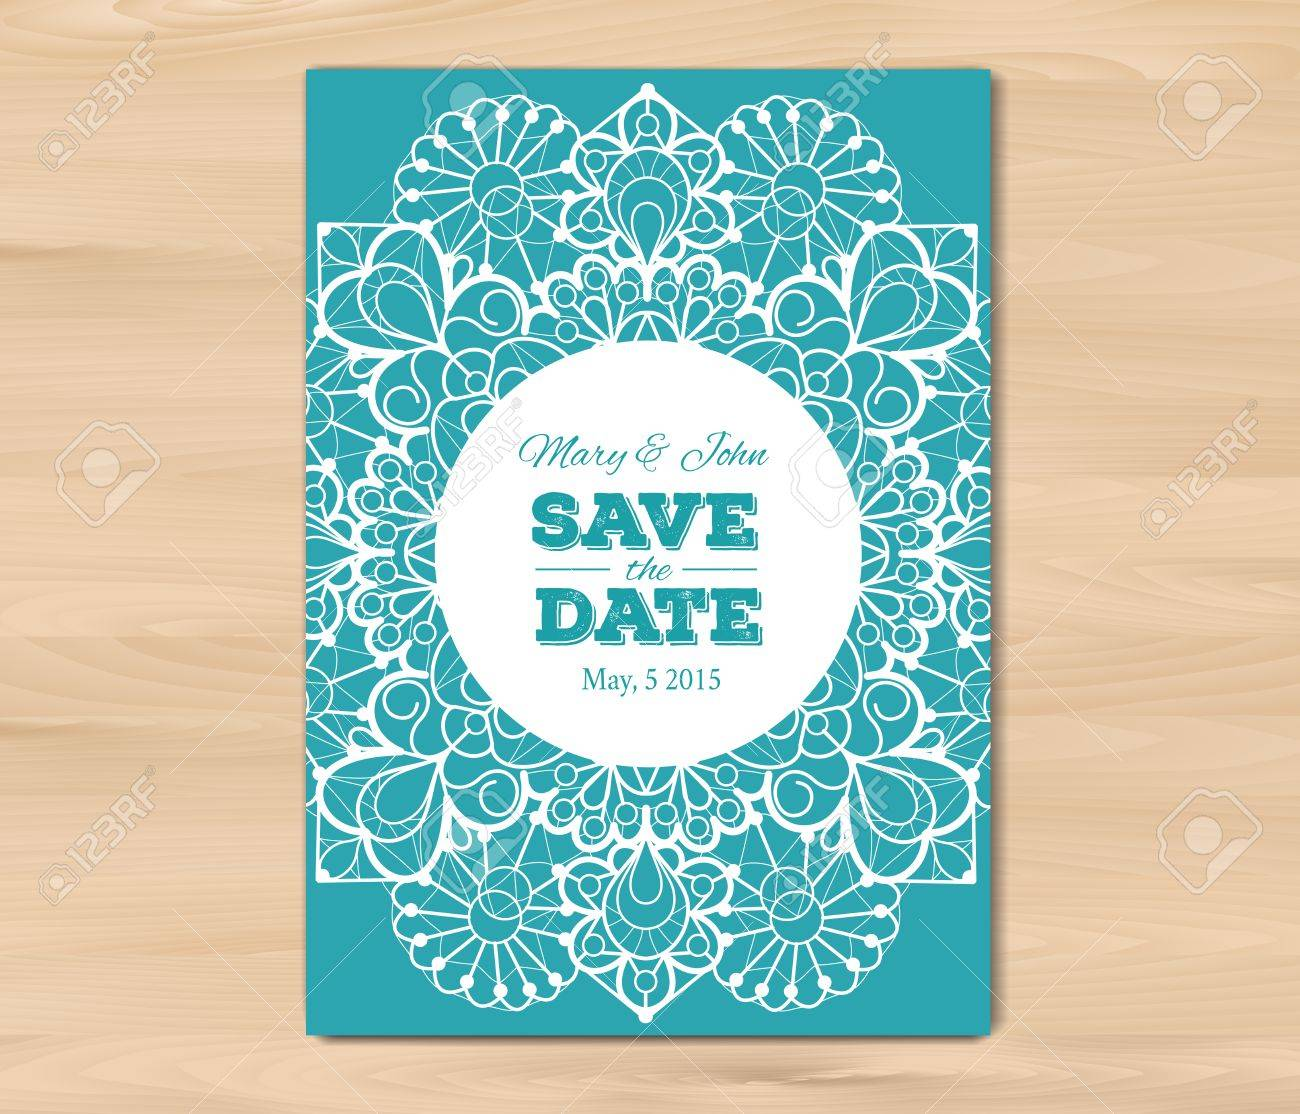 Wedding Invitation Save The Date Card Template On A Wooden – Save the Date Card Template